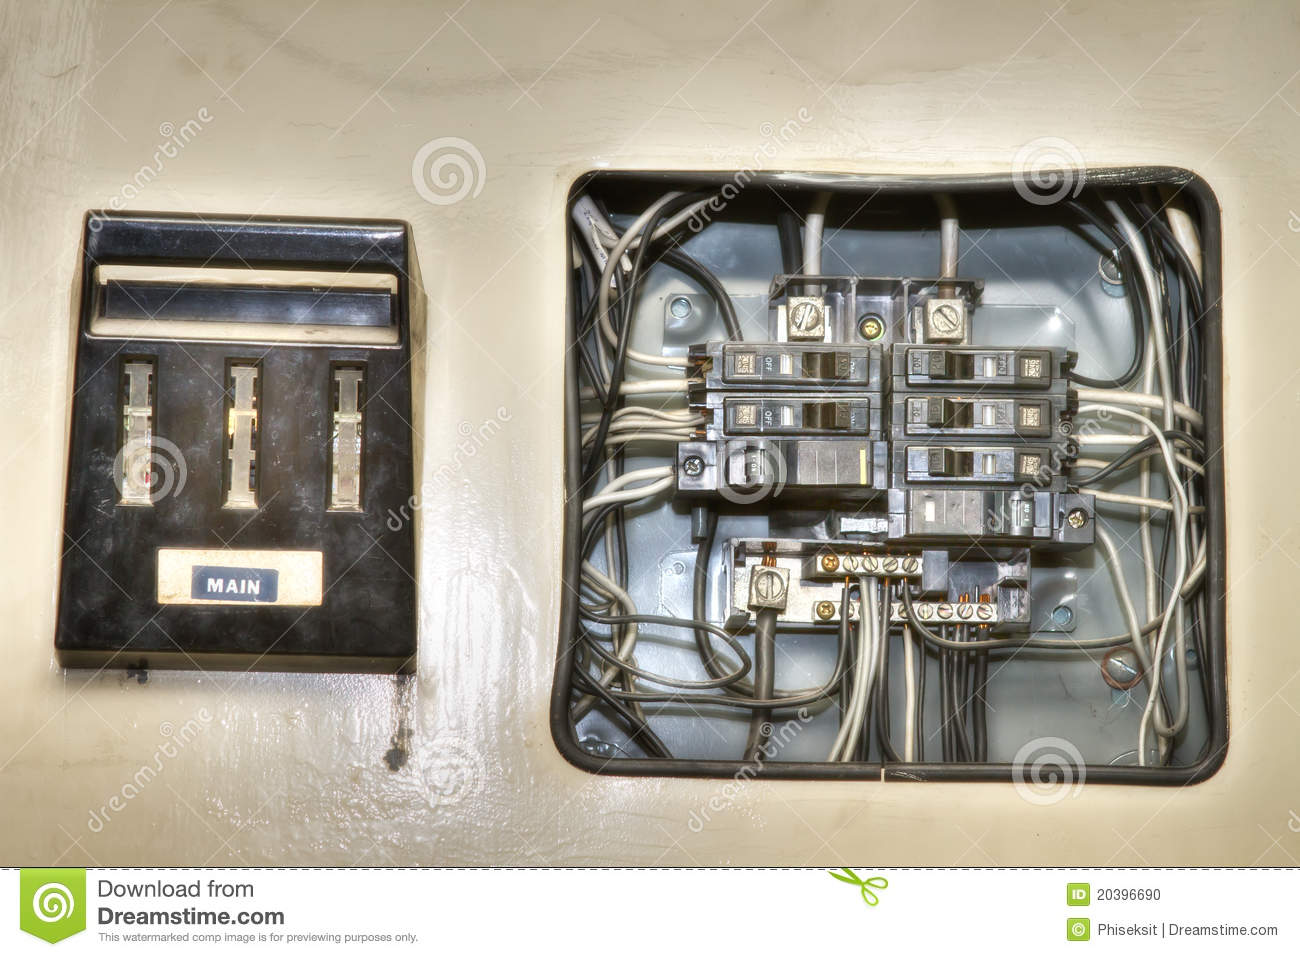 Old House Electrical Control Panel Stock Photo - Image of metal ...